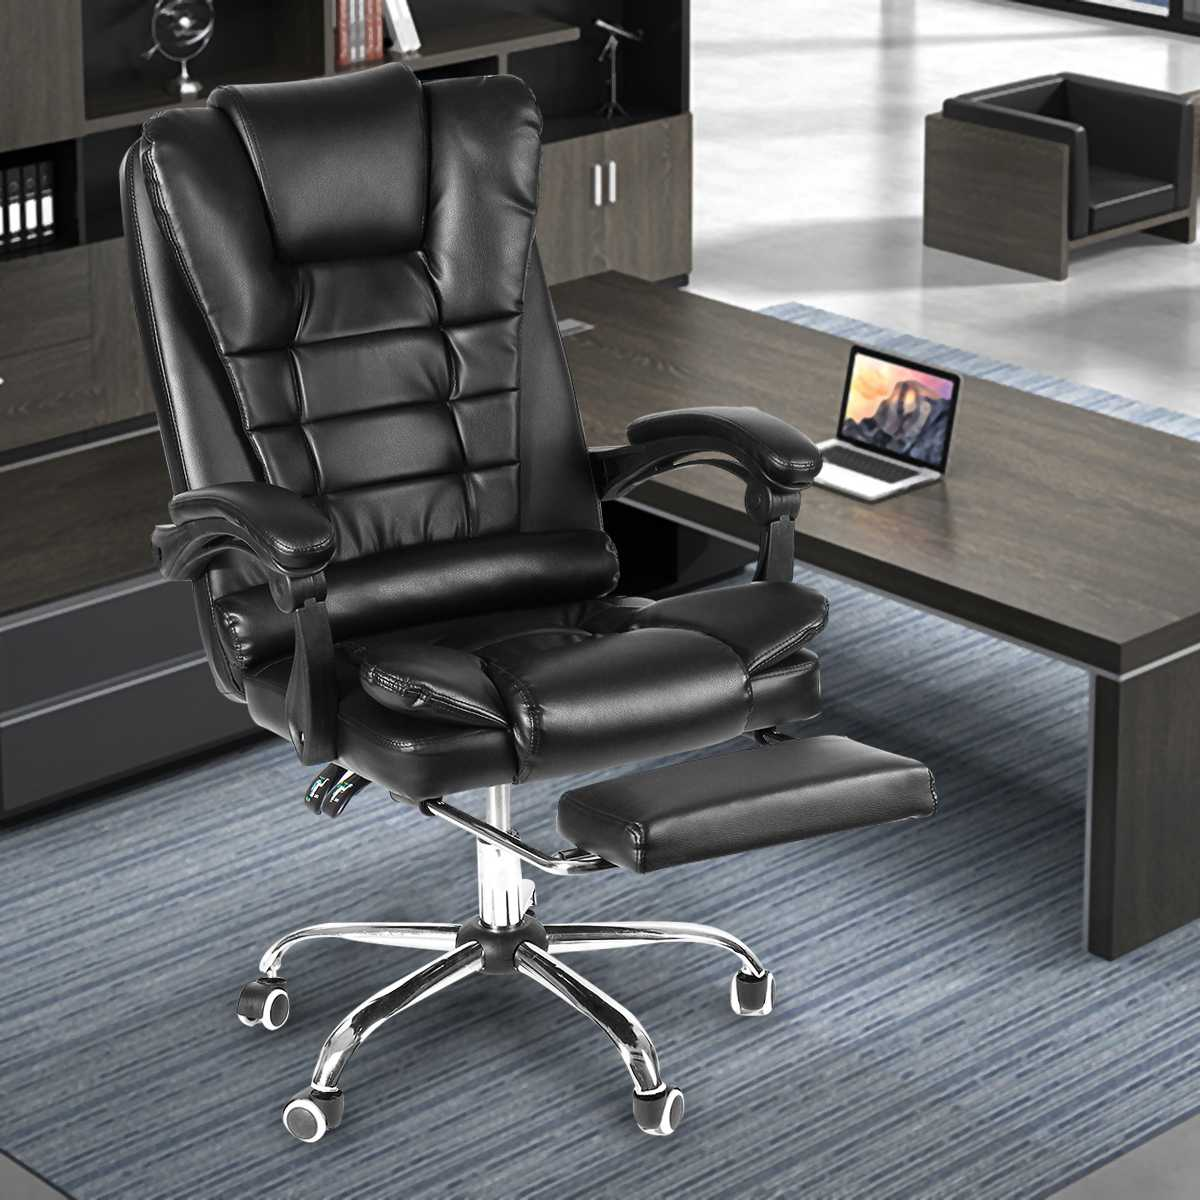 Reclining Office Chair Adjustable Rotating Lift PU Leather Office Computer Gaming Chair Armchair With Footrest Home Furniture